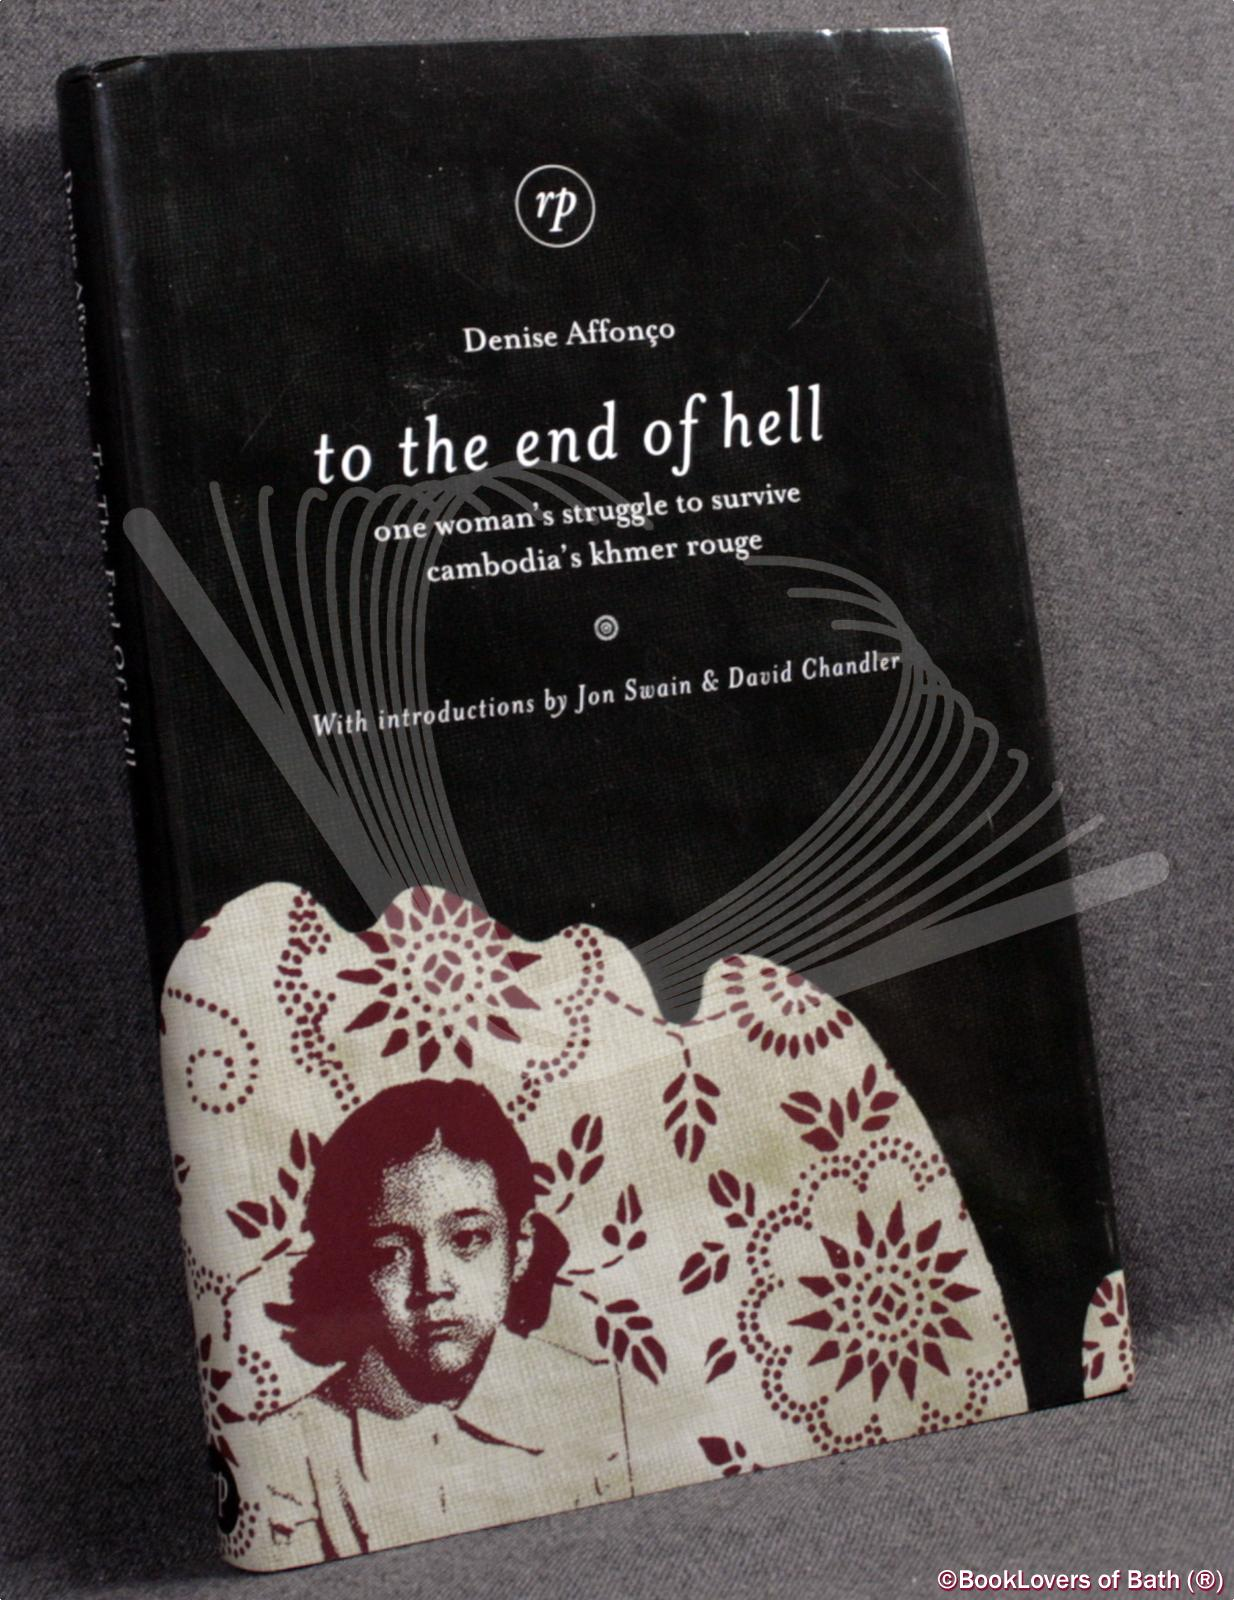 To the End of Hell: One Woman's Struggle to Survive Cambodia's Khmer Rouge - Denise Affonco